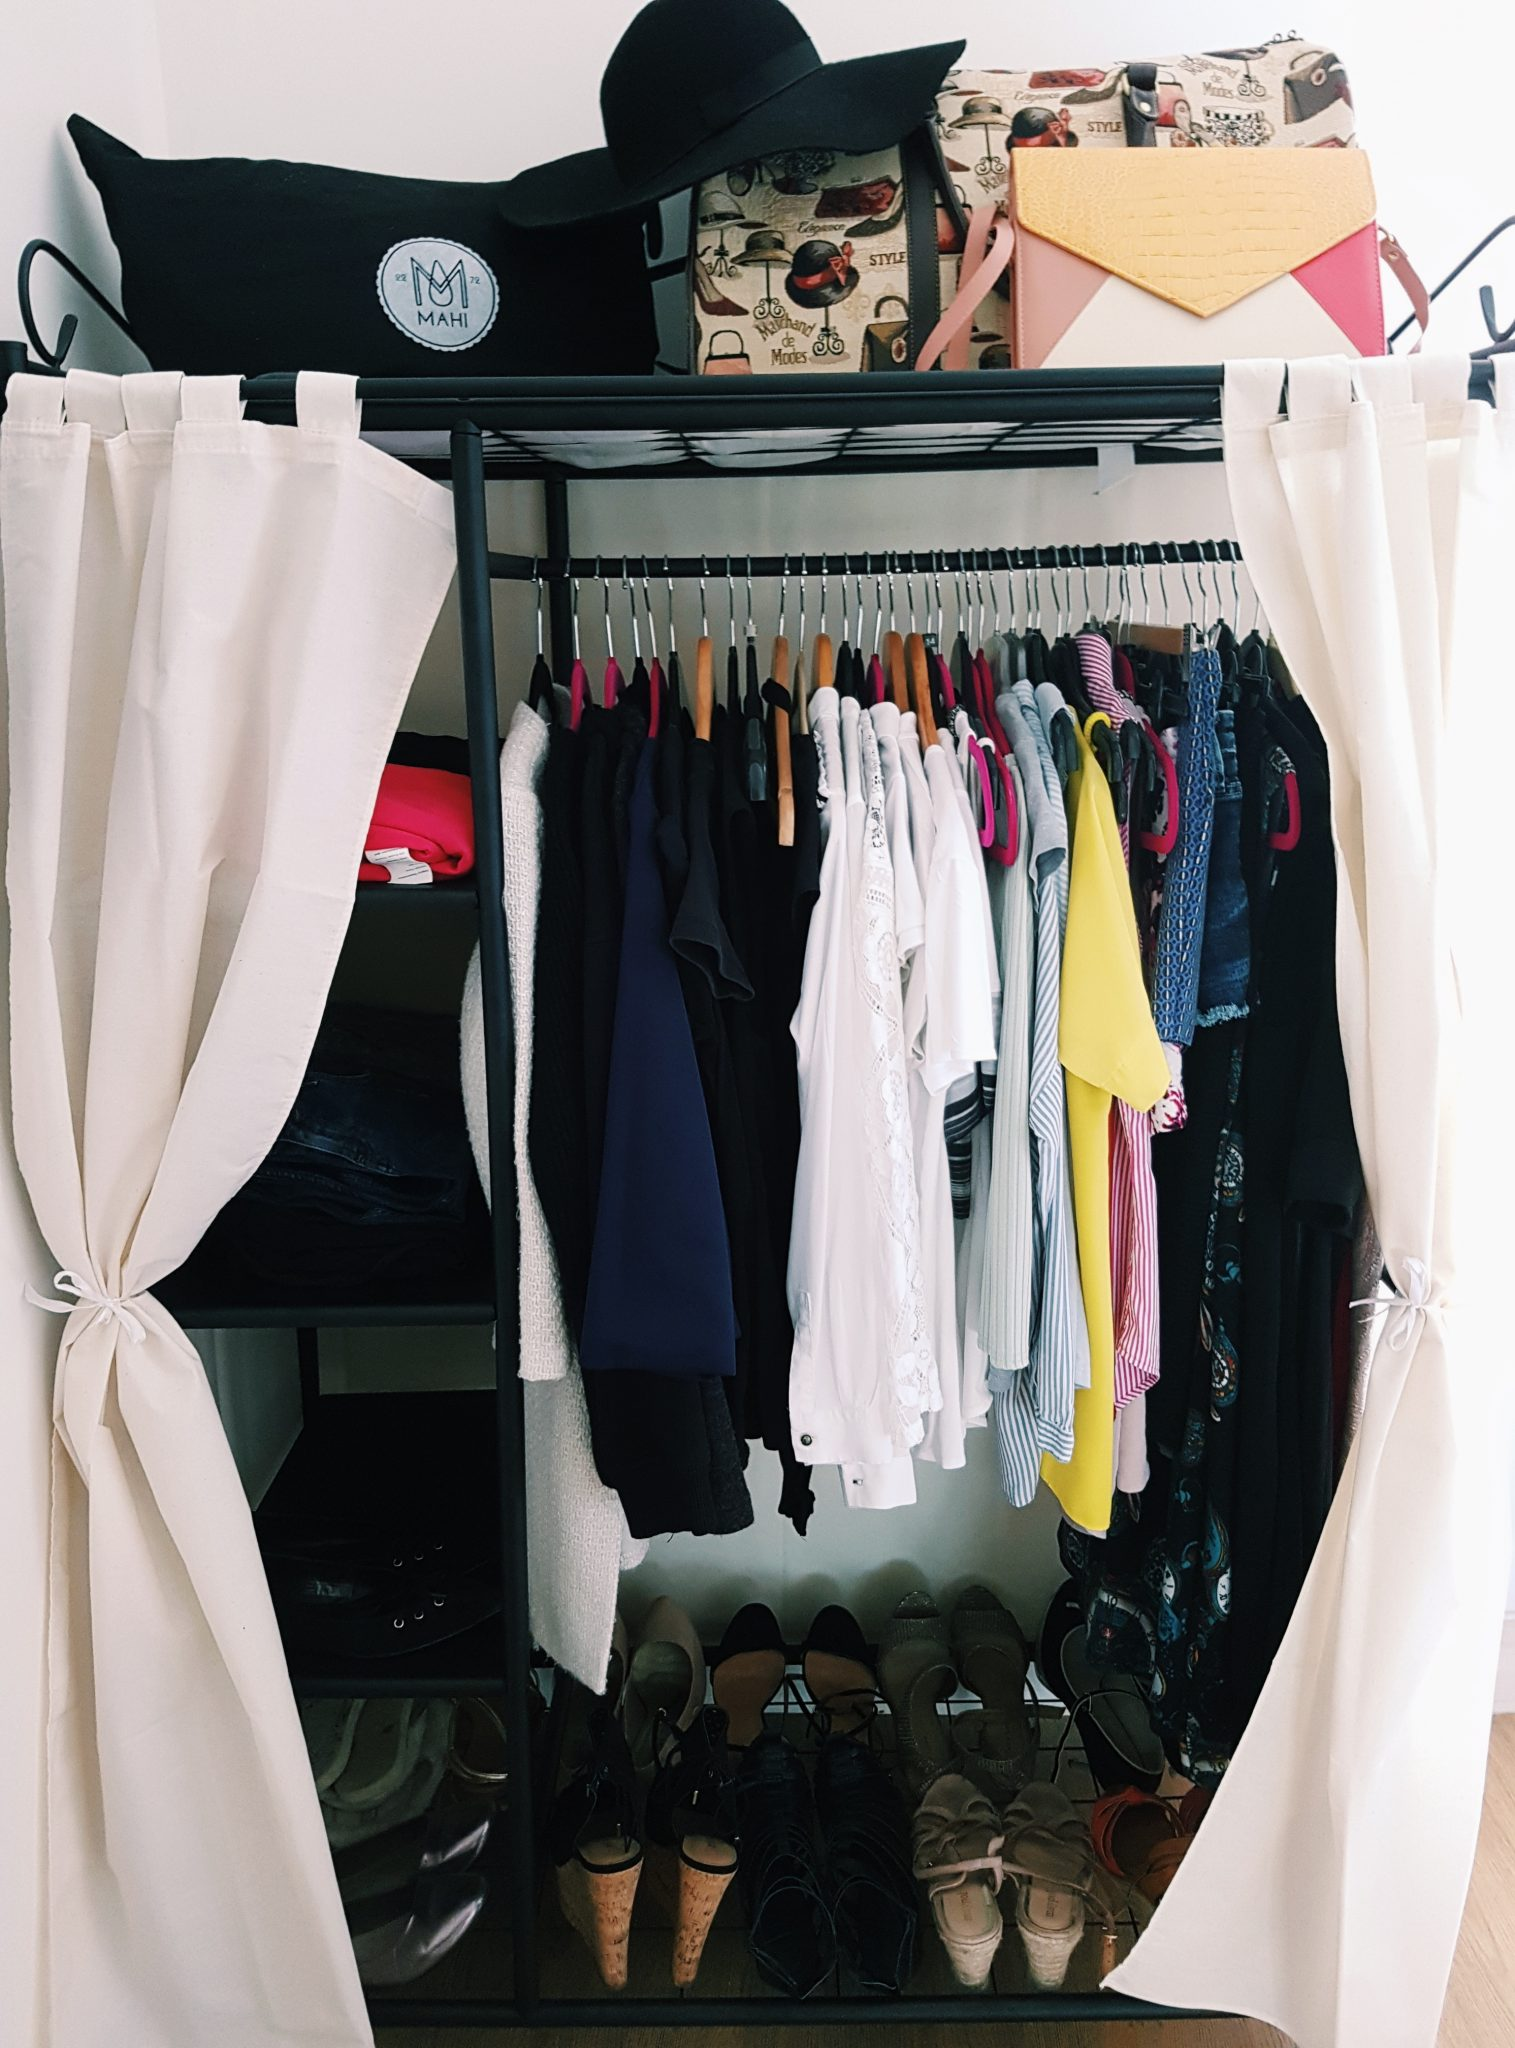 Inside a wardrobe with shoes